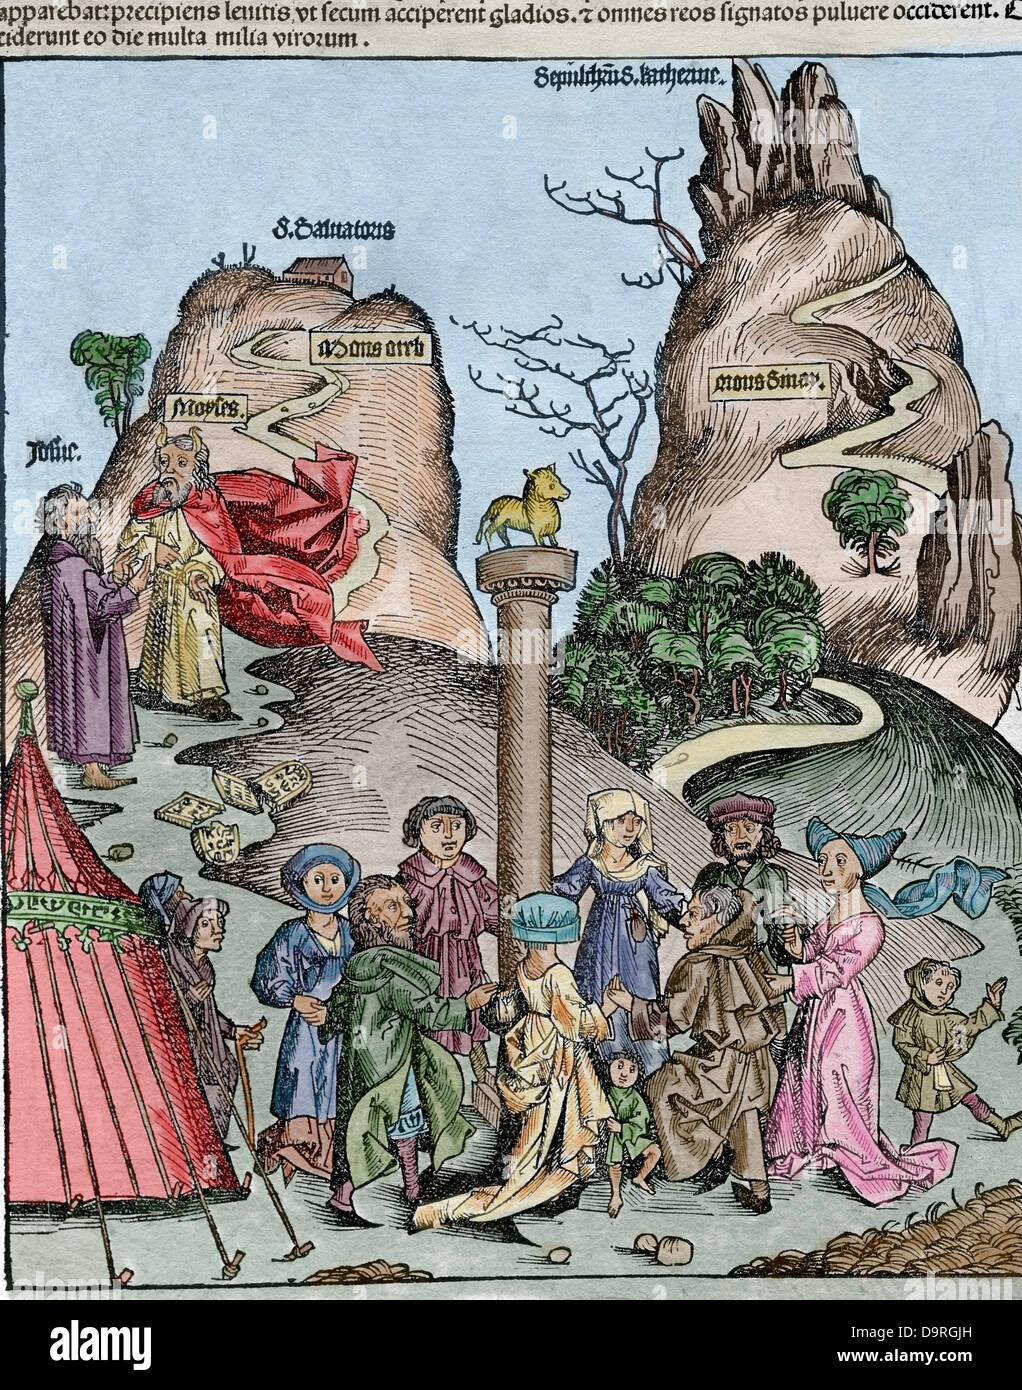 The Nuremberg Chronicle (Liber Chronicarum) by Hartmann Schedel. 1493. - Stock Image